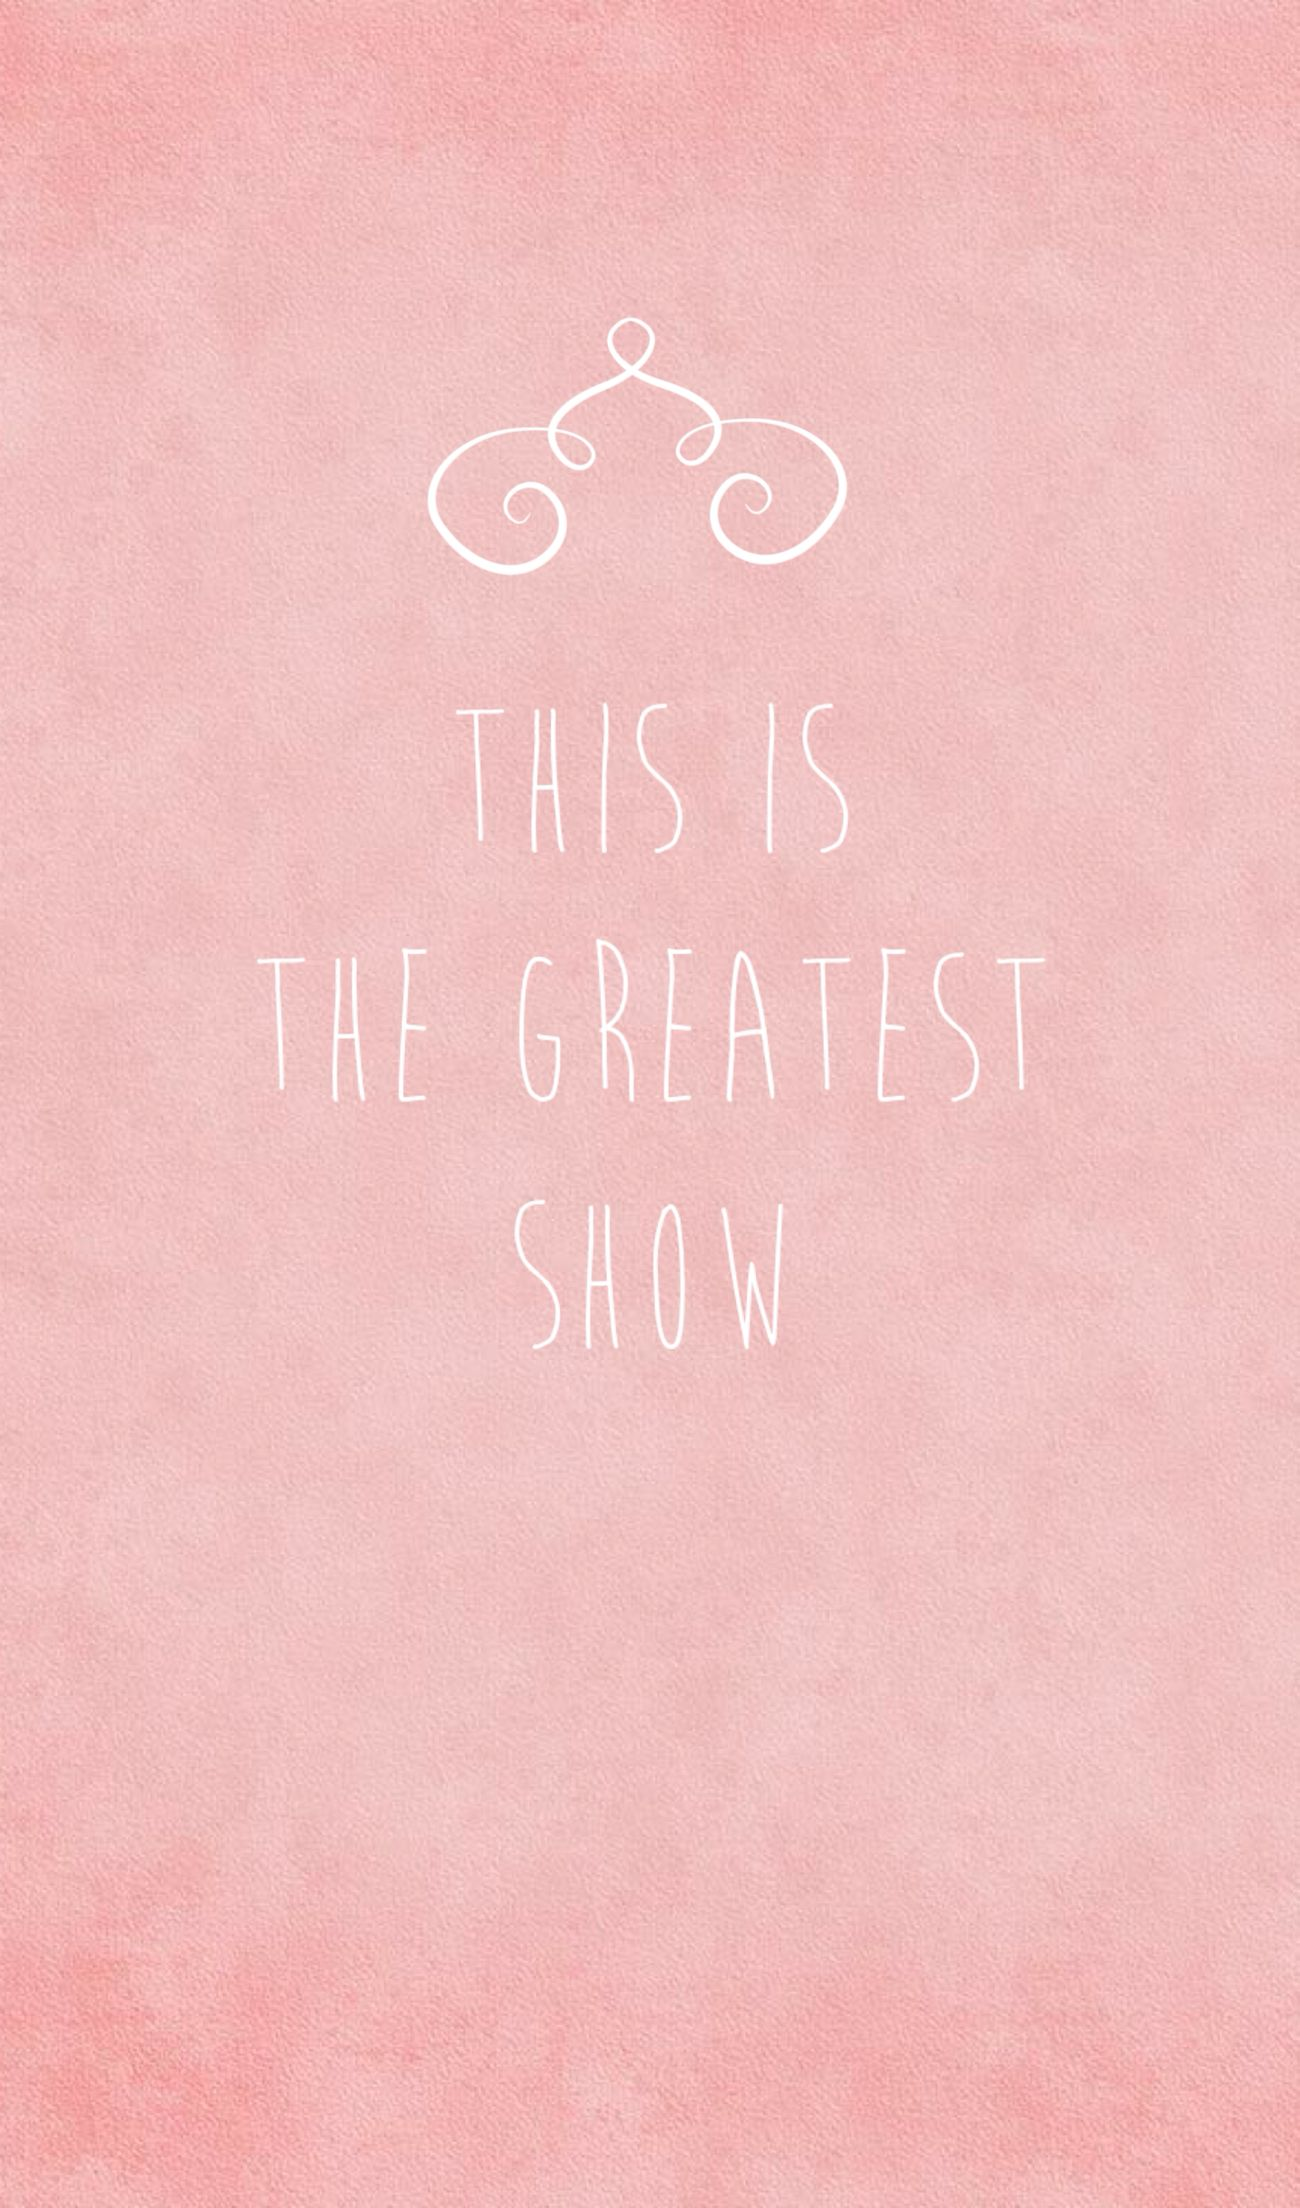 Greatest Showman Iphone Wallpaper The Greatest Showman Showman Iphone Wallpaper